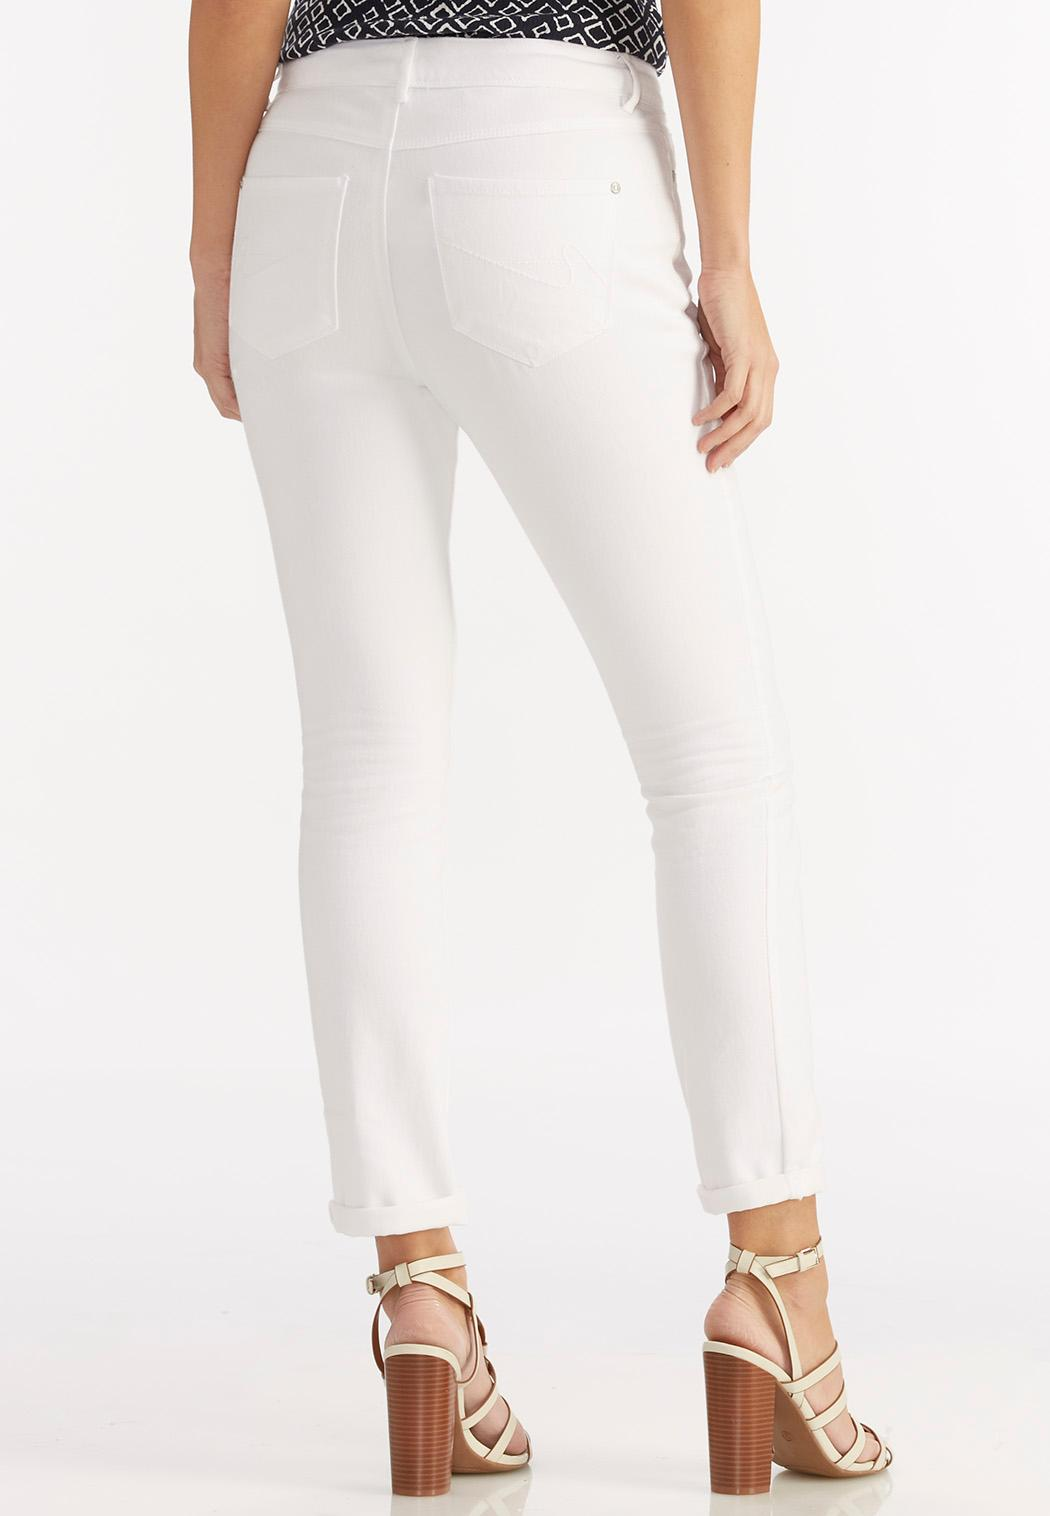 Optic White Skinny Ankle Jeans Ankle Pants Cato Fashions